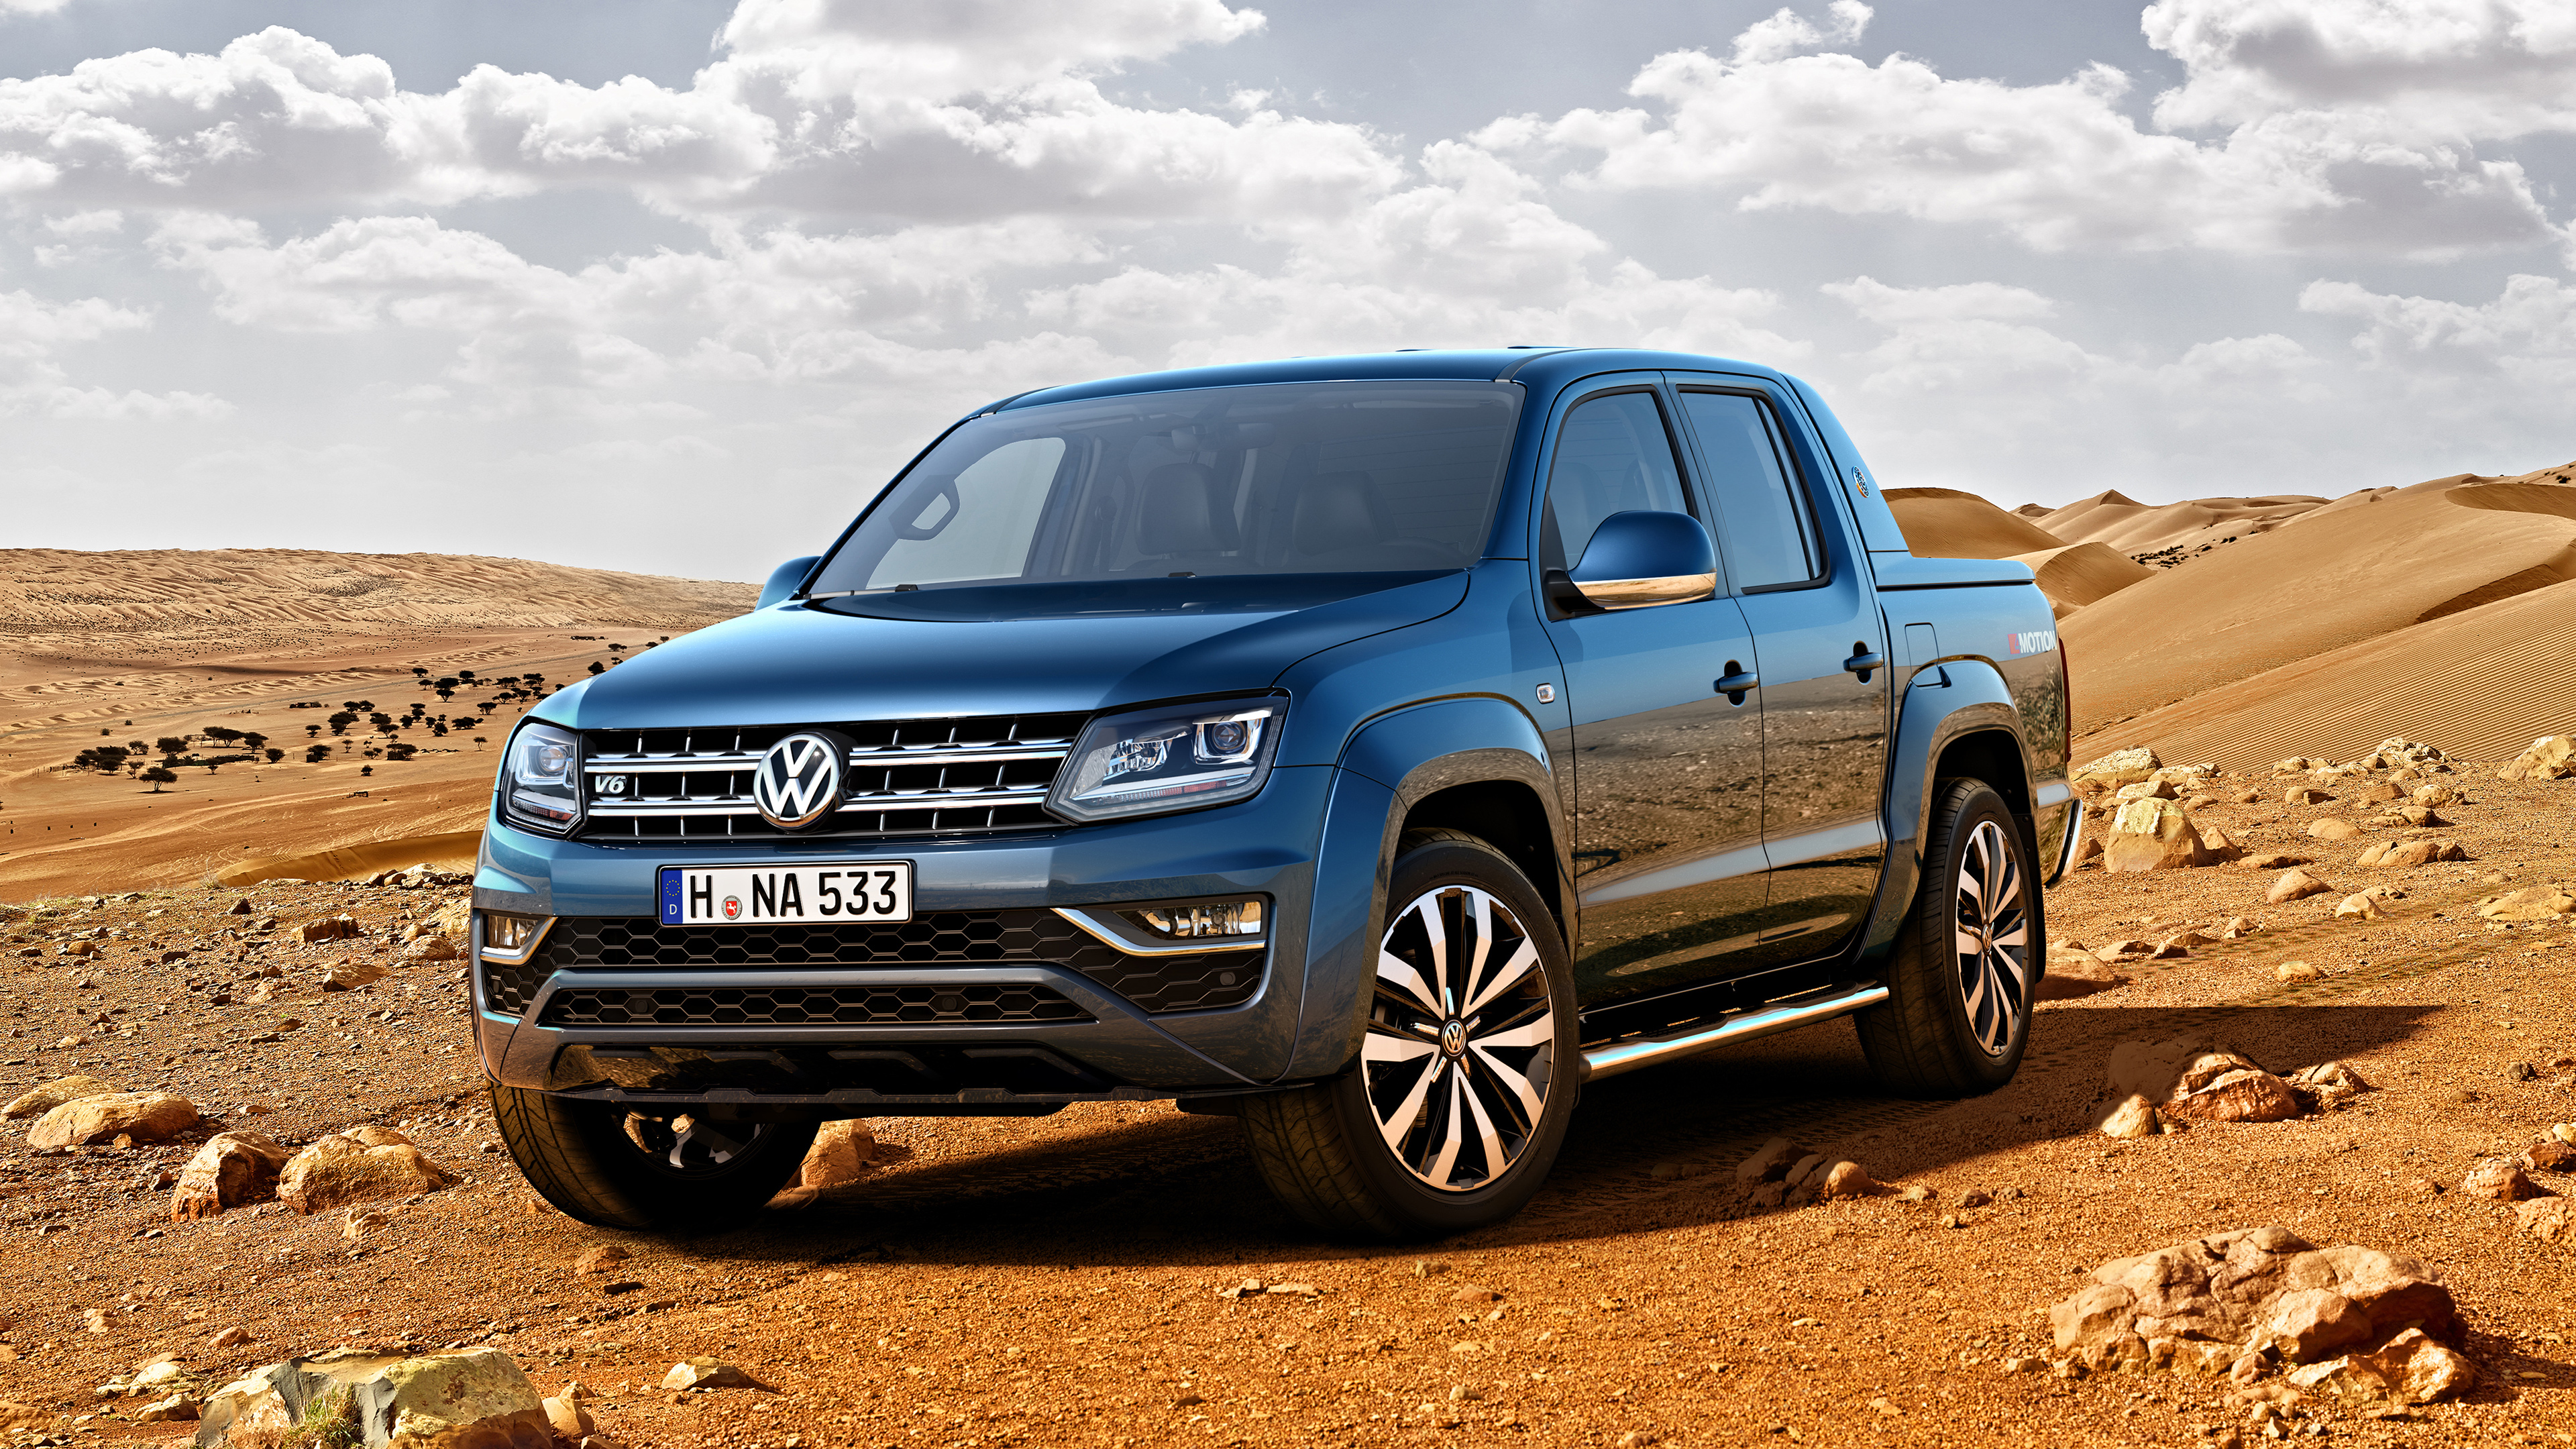 2017 Volkswagen Amarok Wallpaper Hd Car Wallpapers